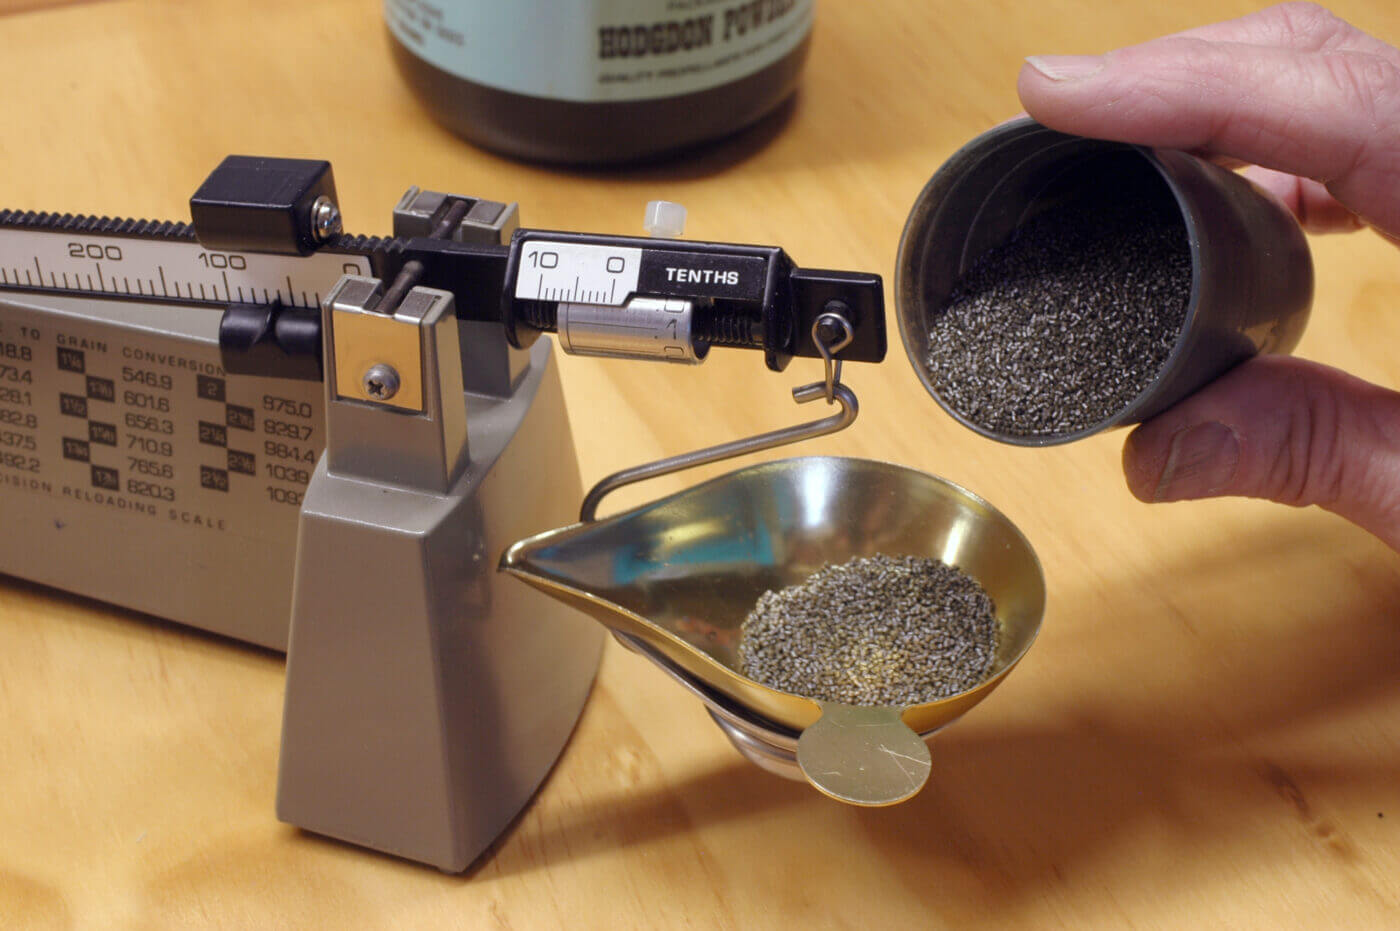 Weighing powder charges